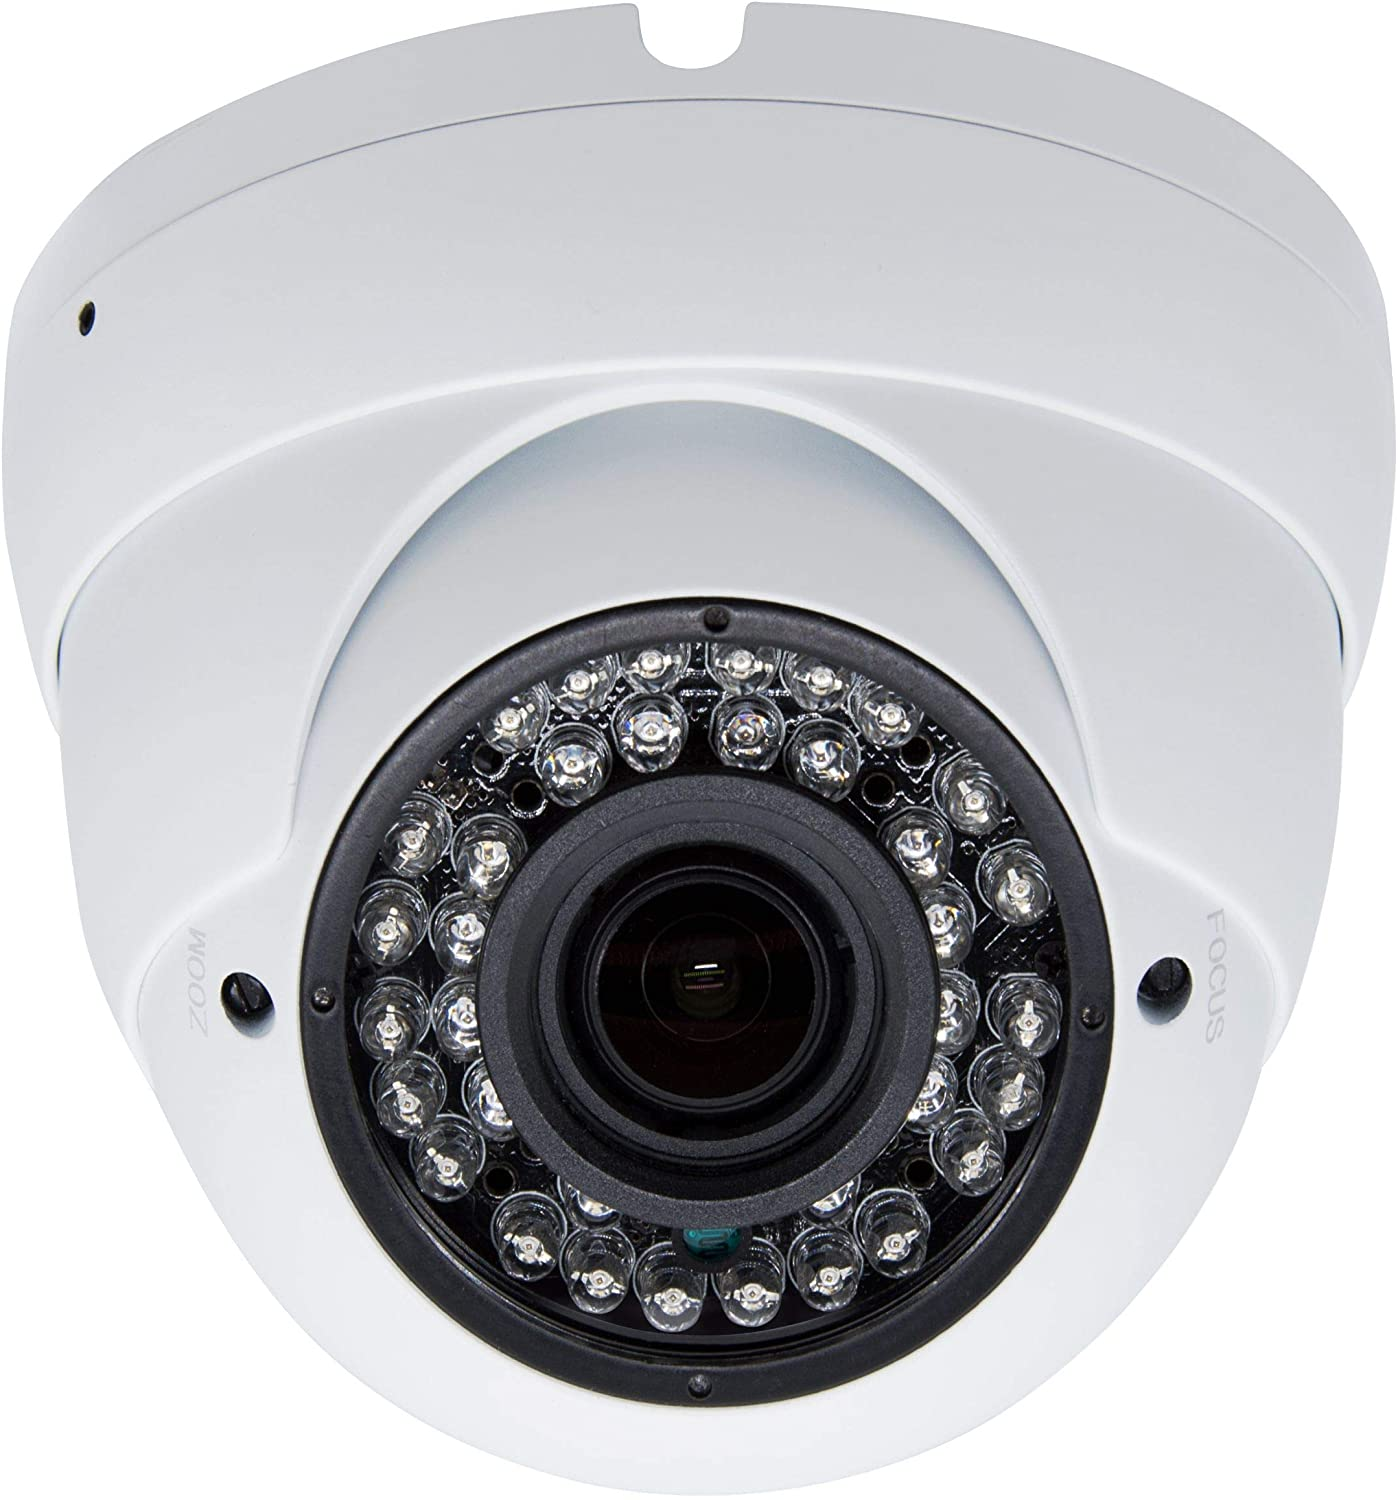 5MP 4MP Dome Super Hybrid Security Camera Vonnision 4in1 TVI/CVI/AHD/960H CCTV Surveillance Security Camera 2.8-12mm Varifocal Lens Waterproof Day&Night Vision Outdoor/Indoor 98ft IR Camera White